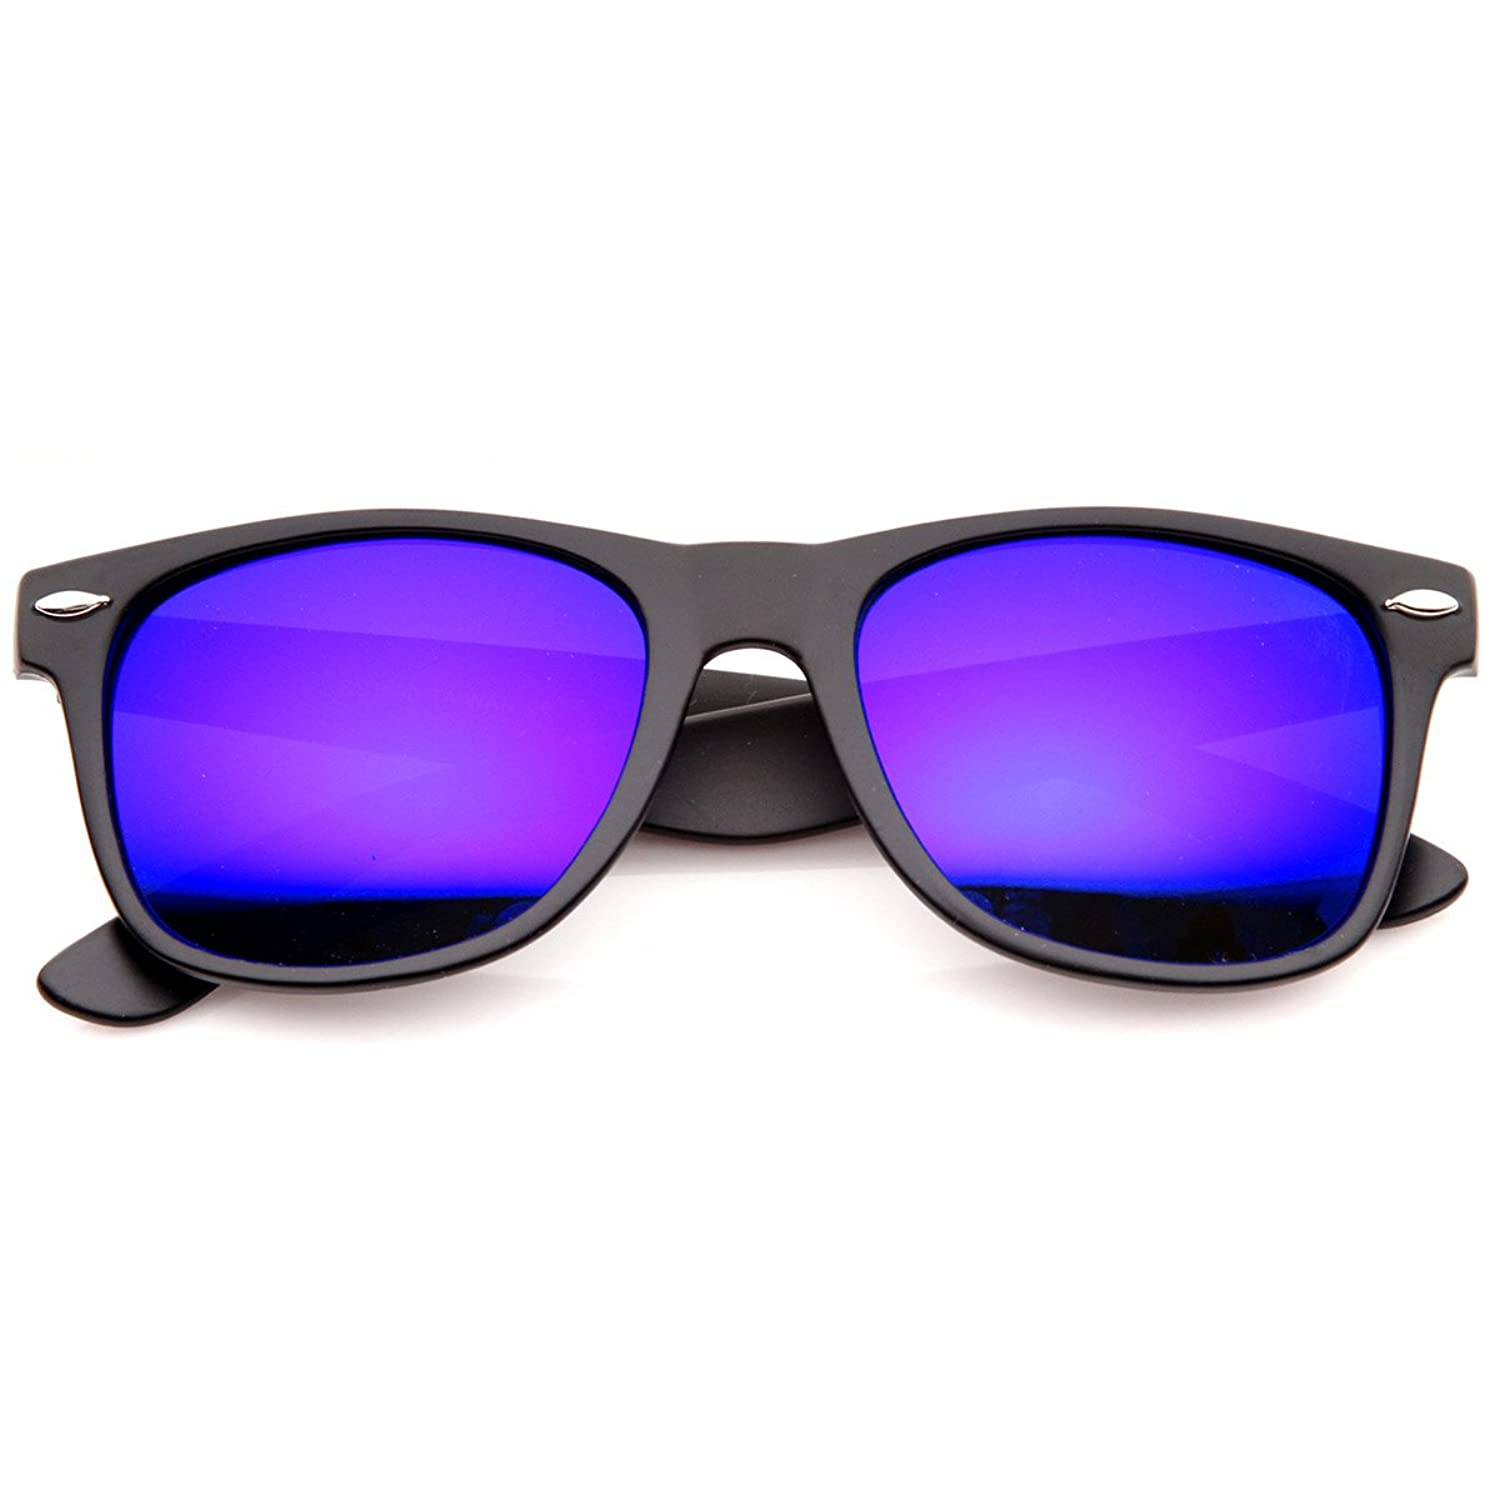 Flat Matte Reflective Revo Color Lens Large Wayfarers Style Sunglasses - UV400 (Black Purple)